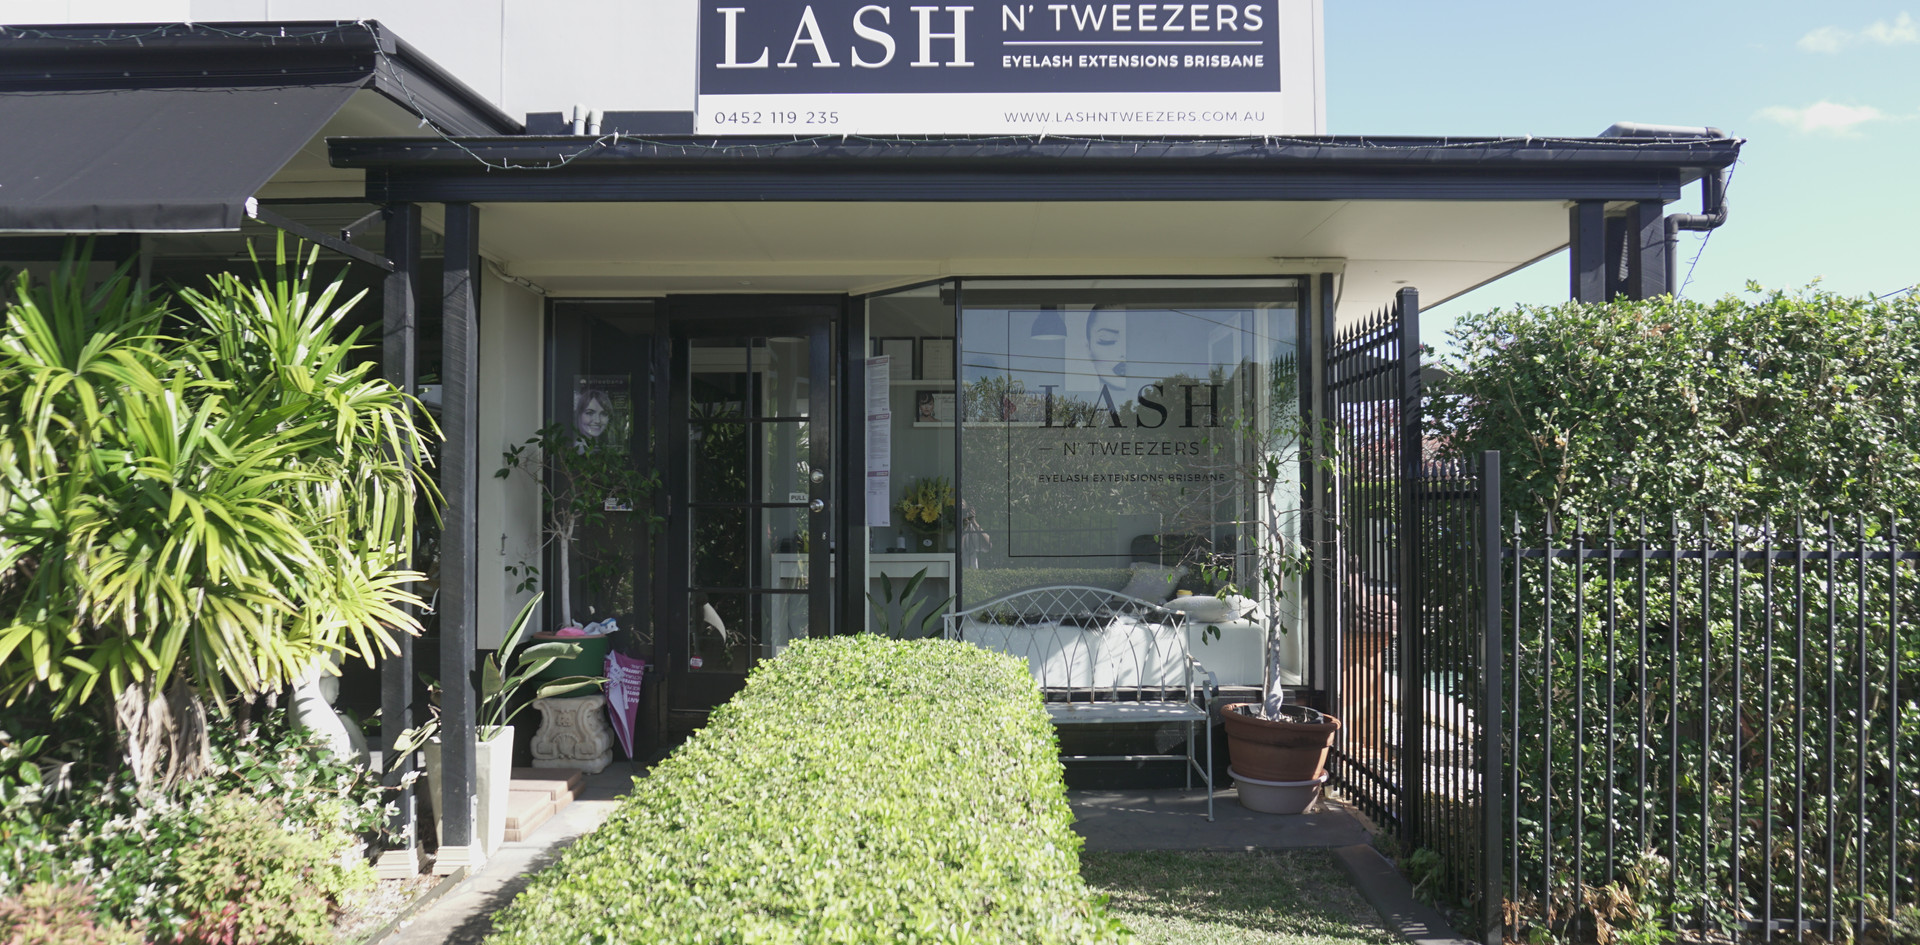 Lash N Tweezers Salon